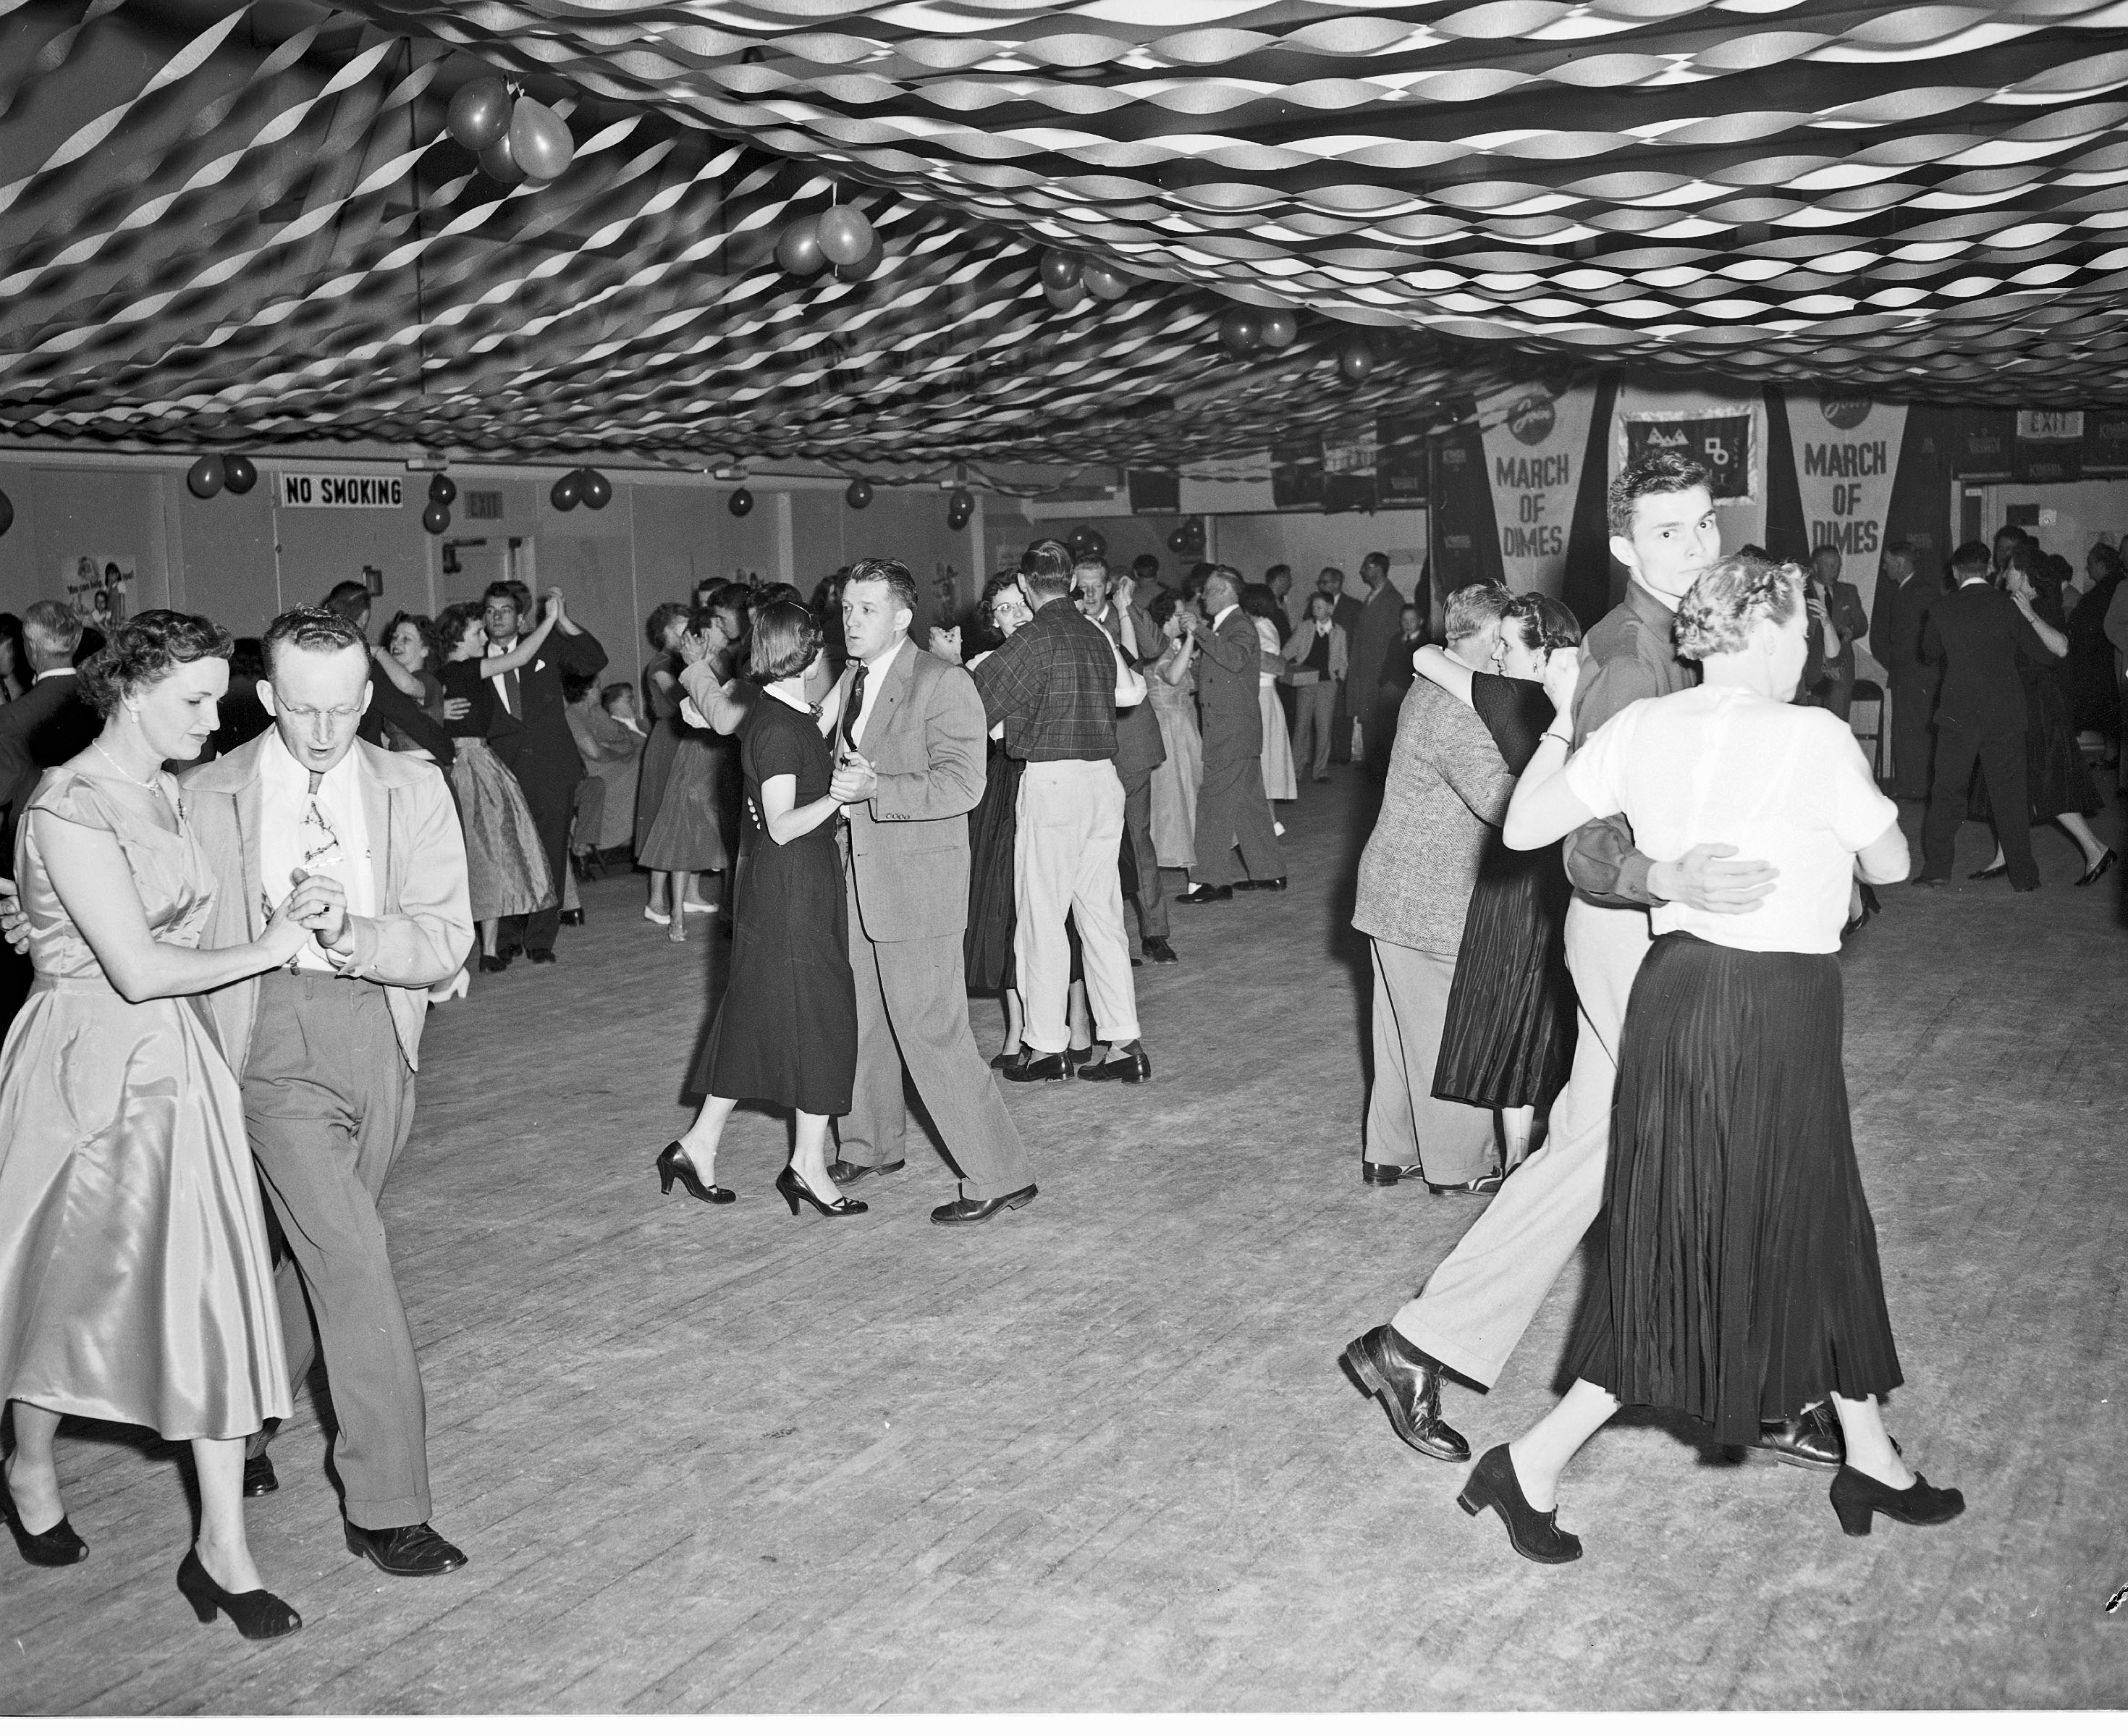 File:March of Dimes dance at Newhalem, Washington, 1954.jpg